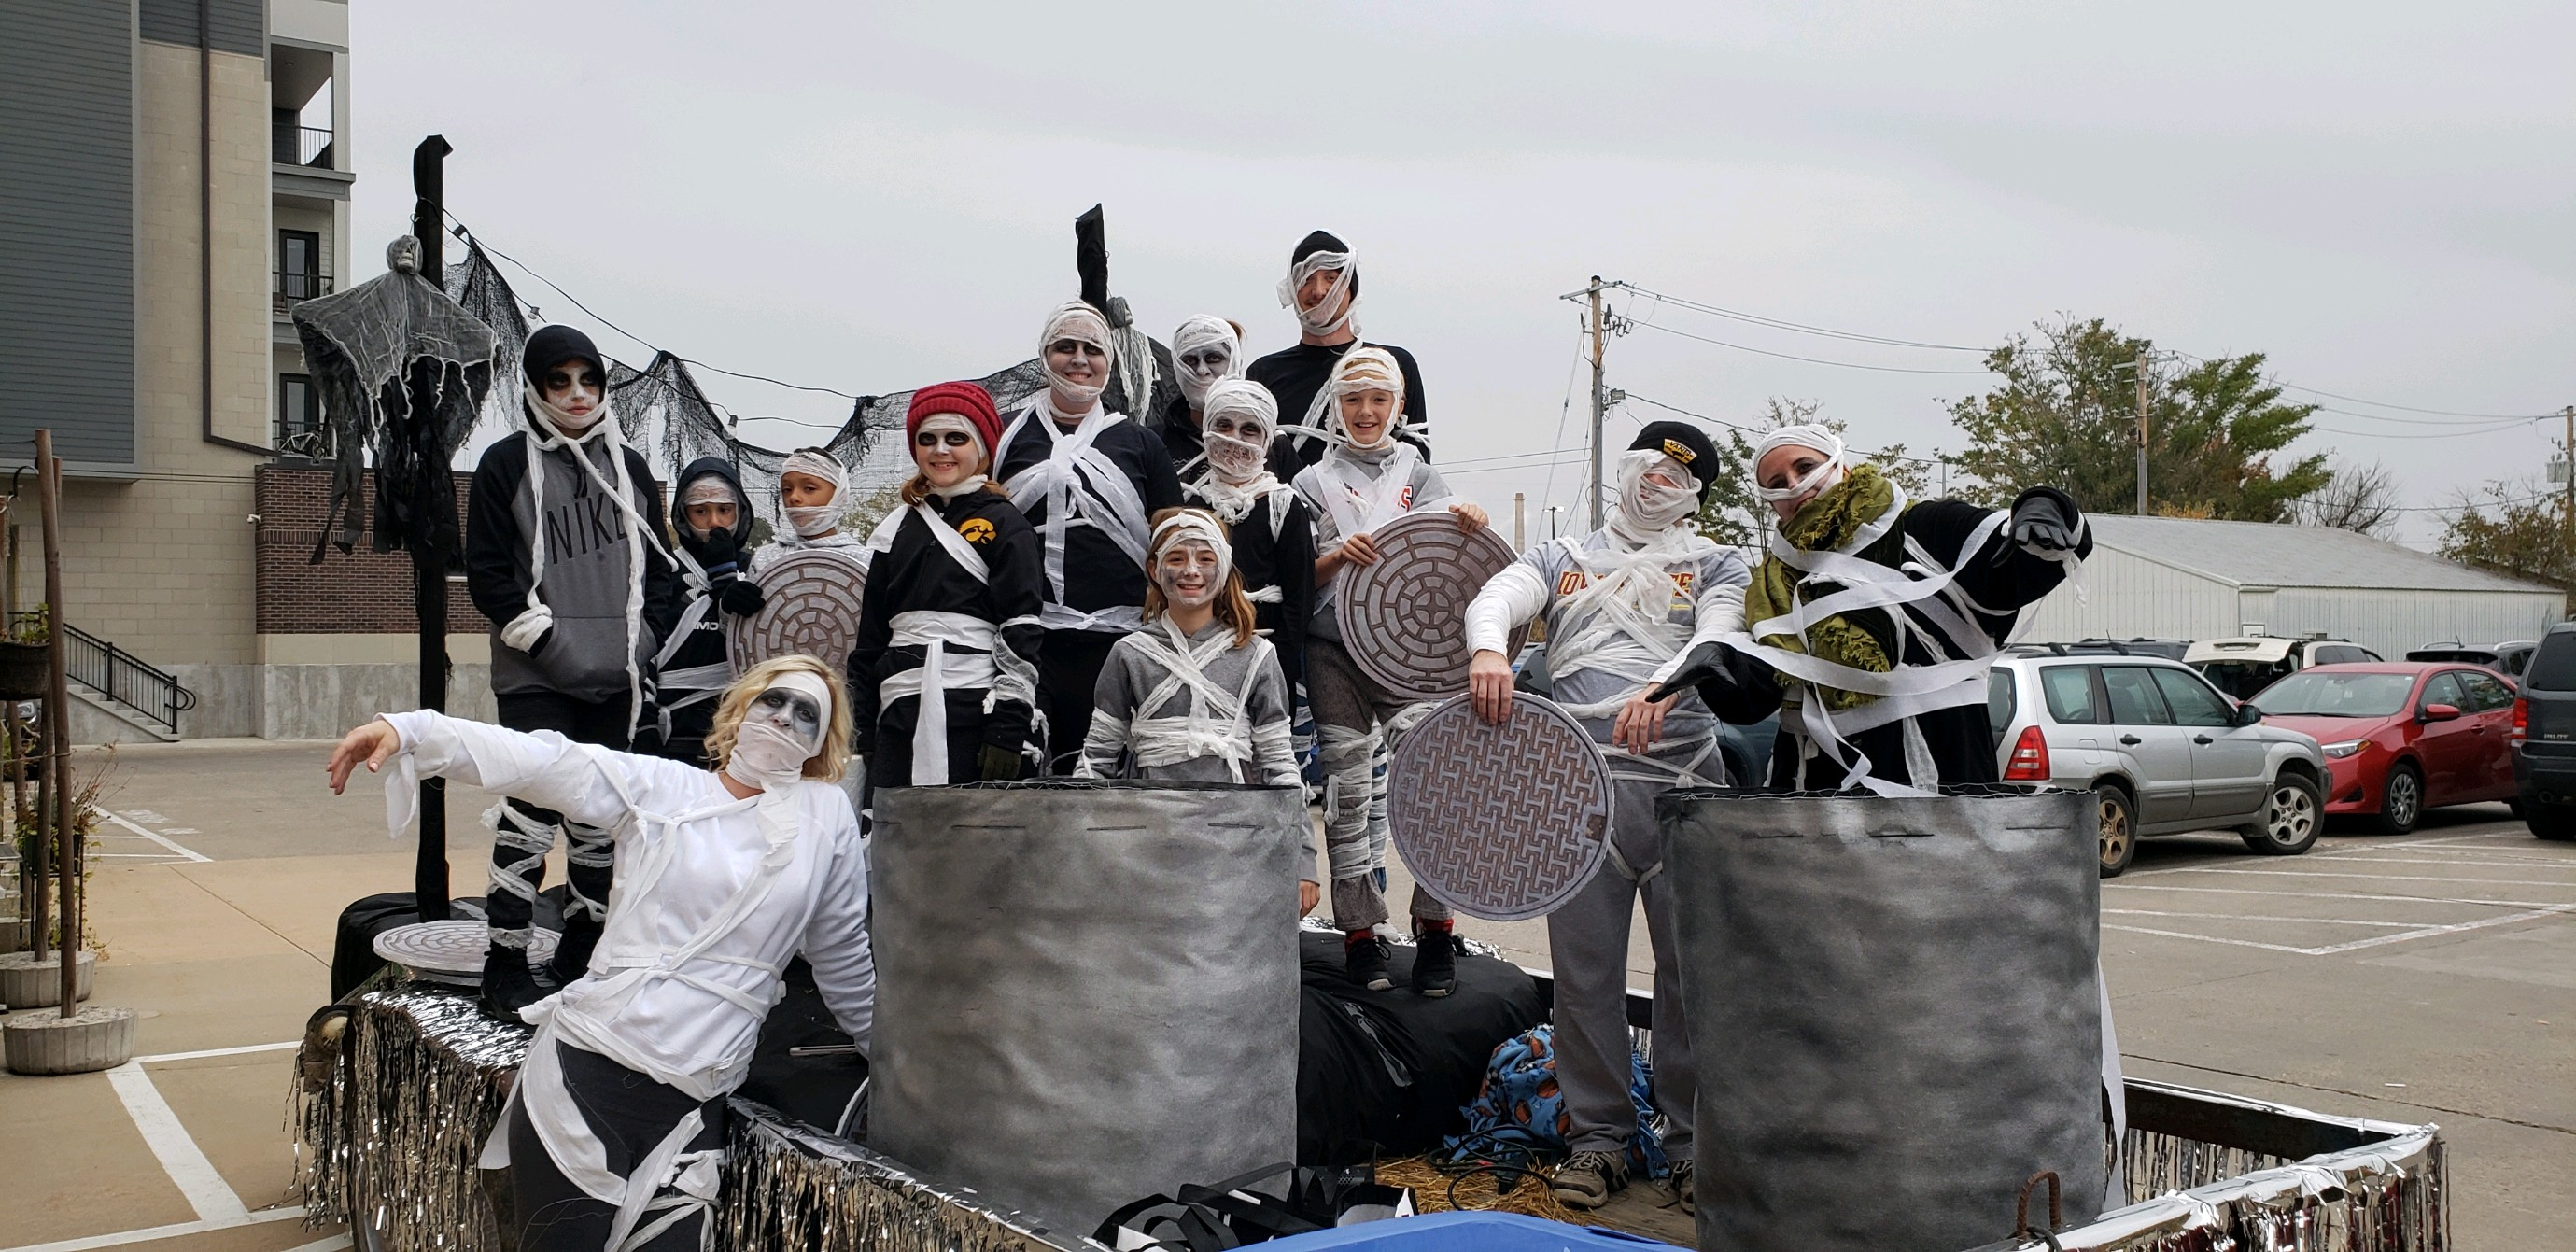 HBK float with mummies and manholes